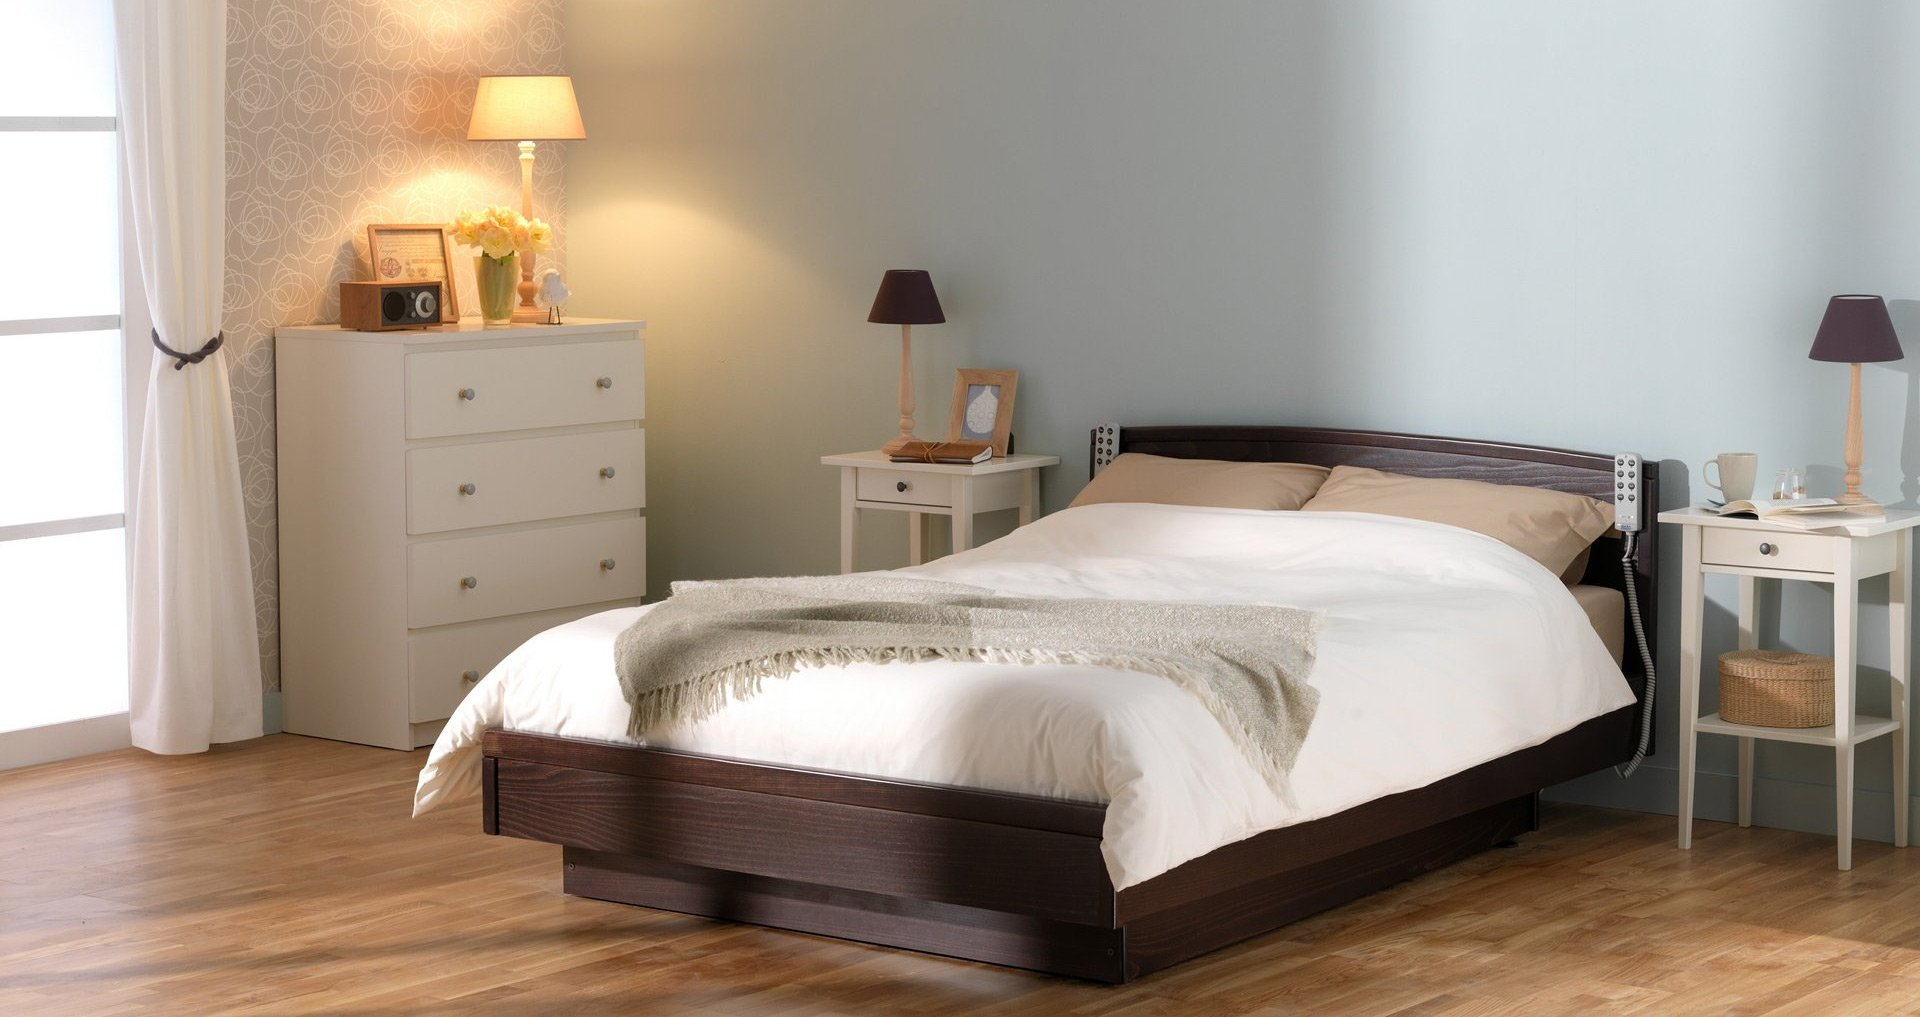 TWIN PROFILING HEIGHT ADJUSTABLE BED